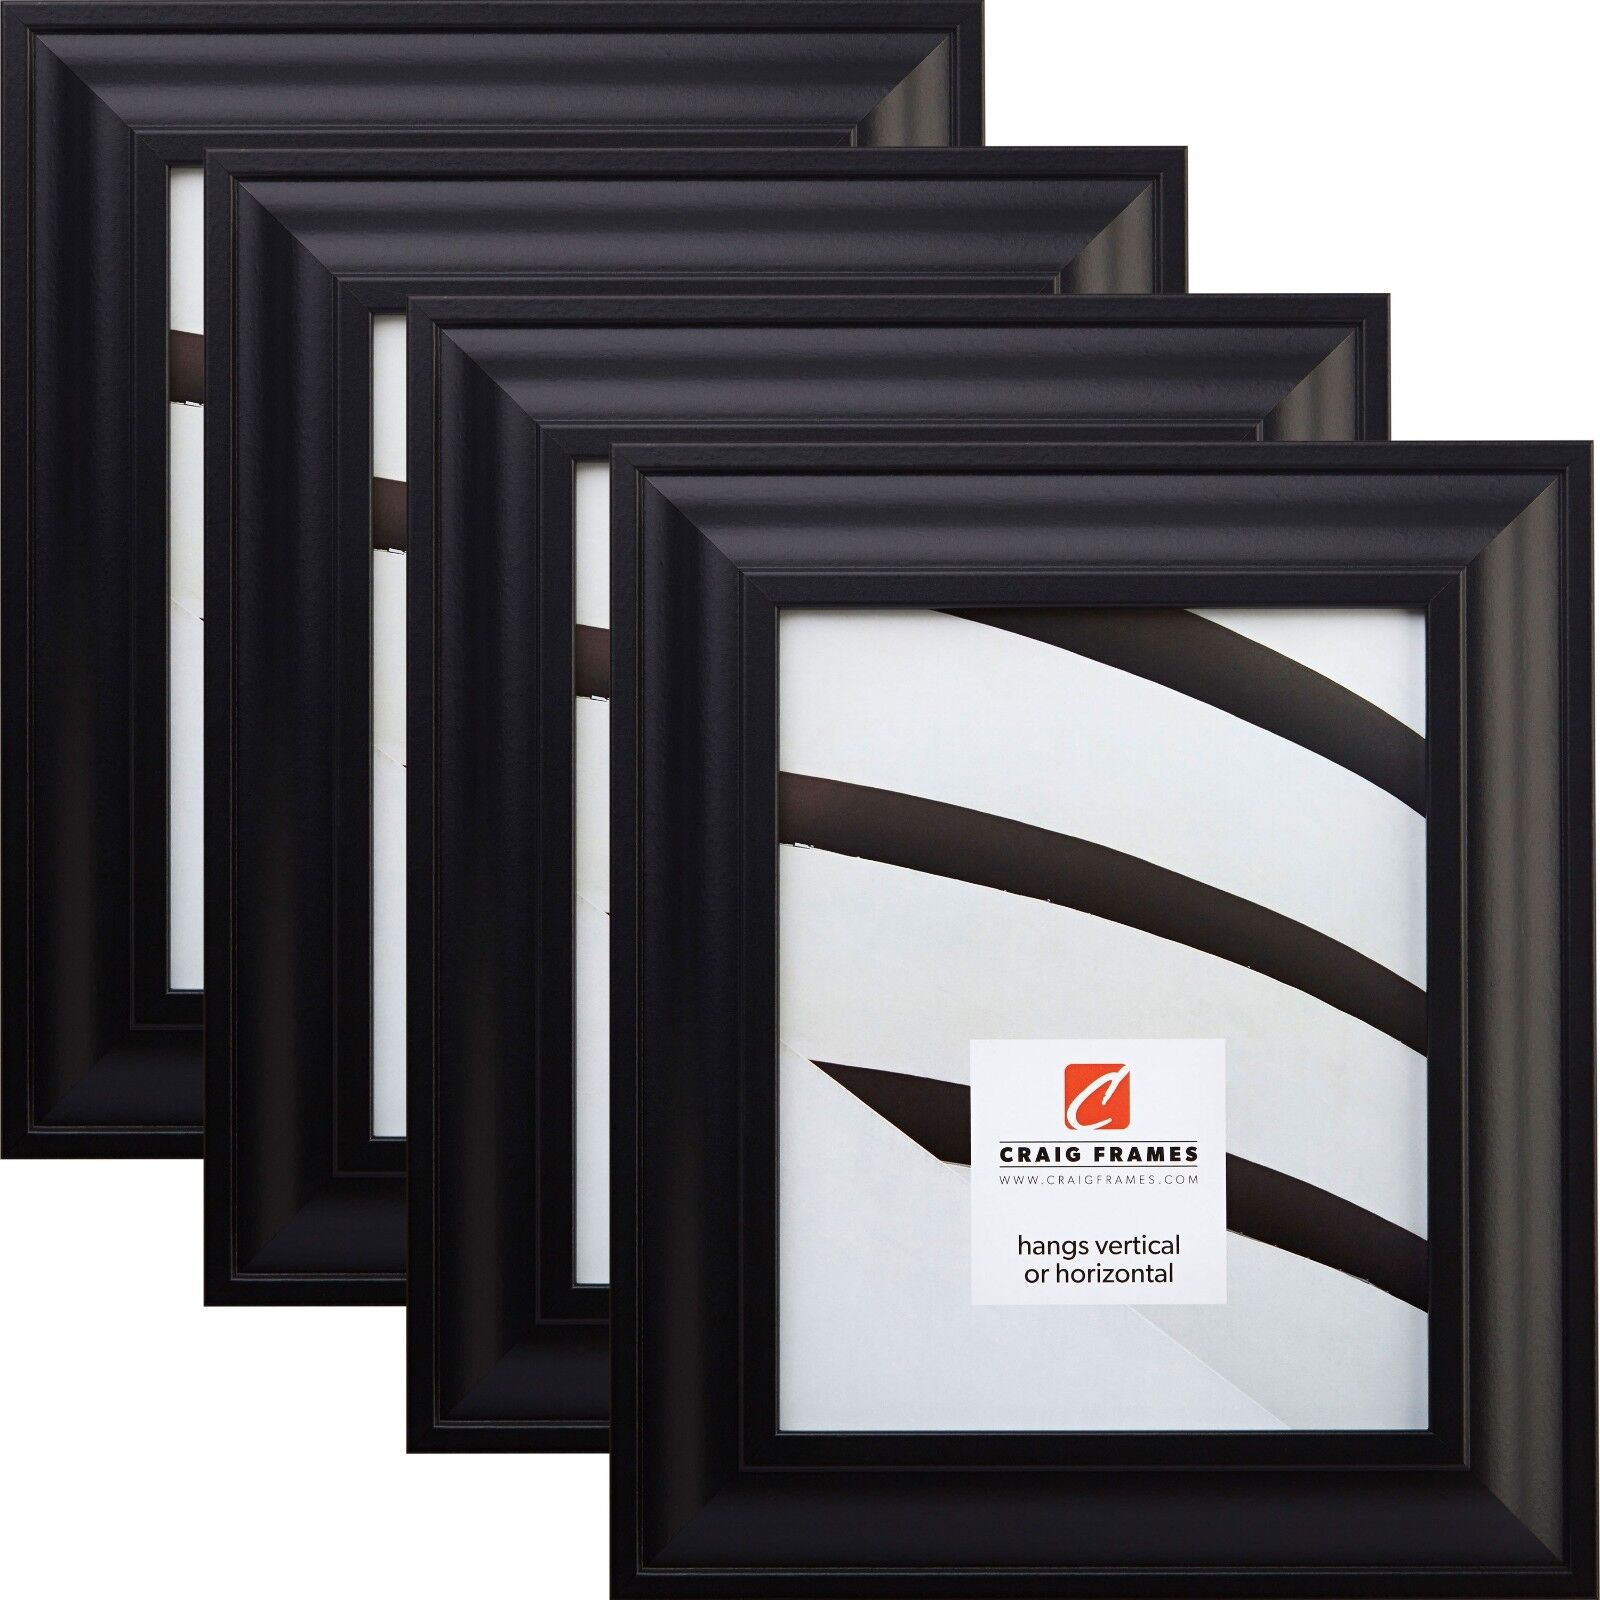 3 by 9-Inch Black Satin Picture Frame Craig Frames Contemporary Wide